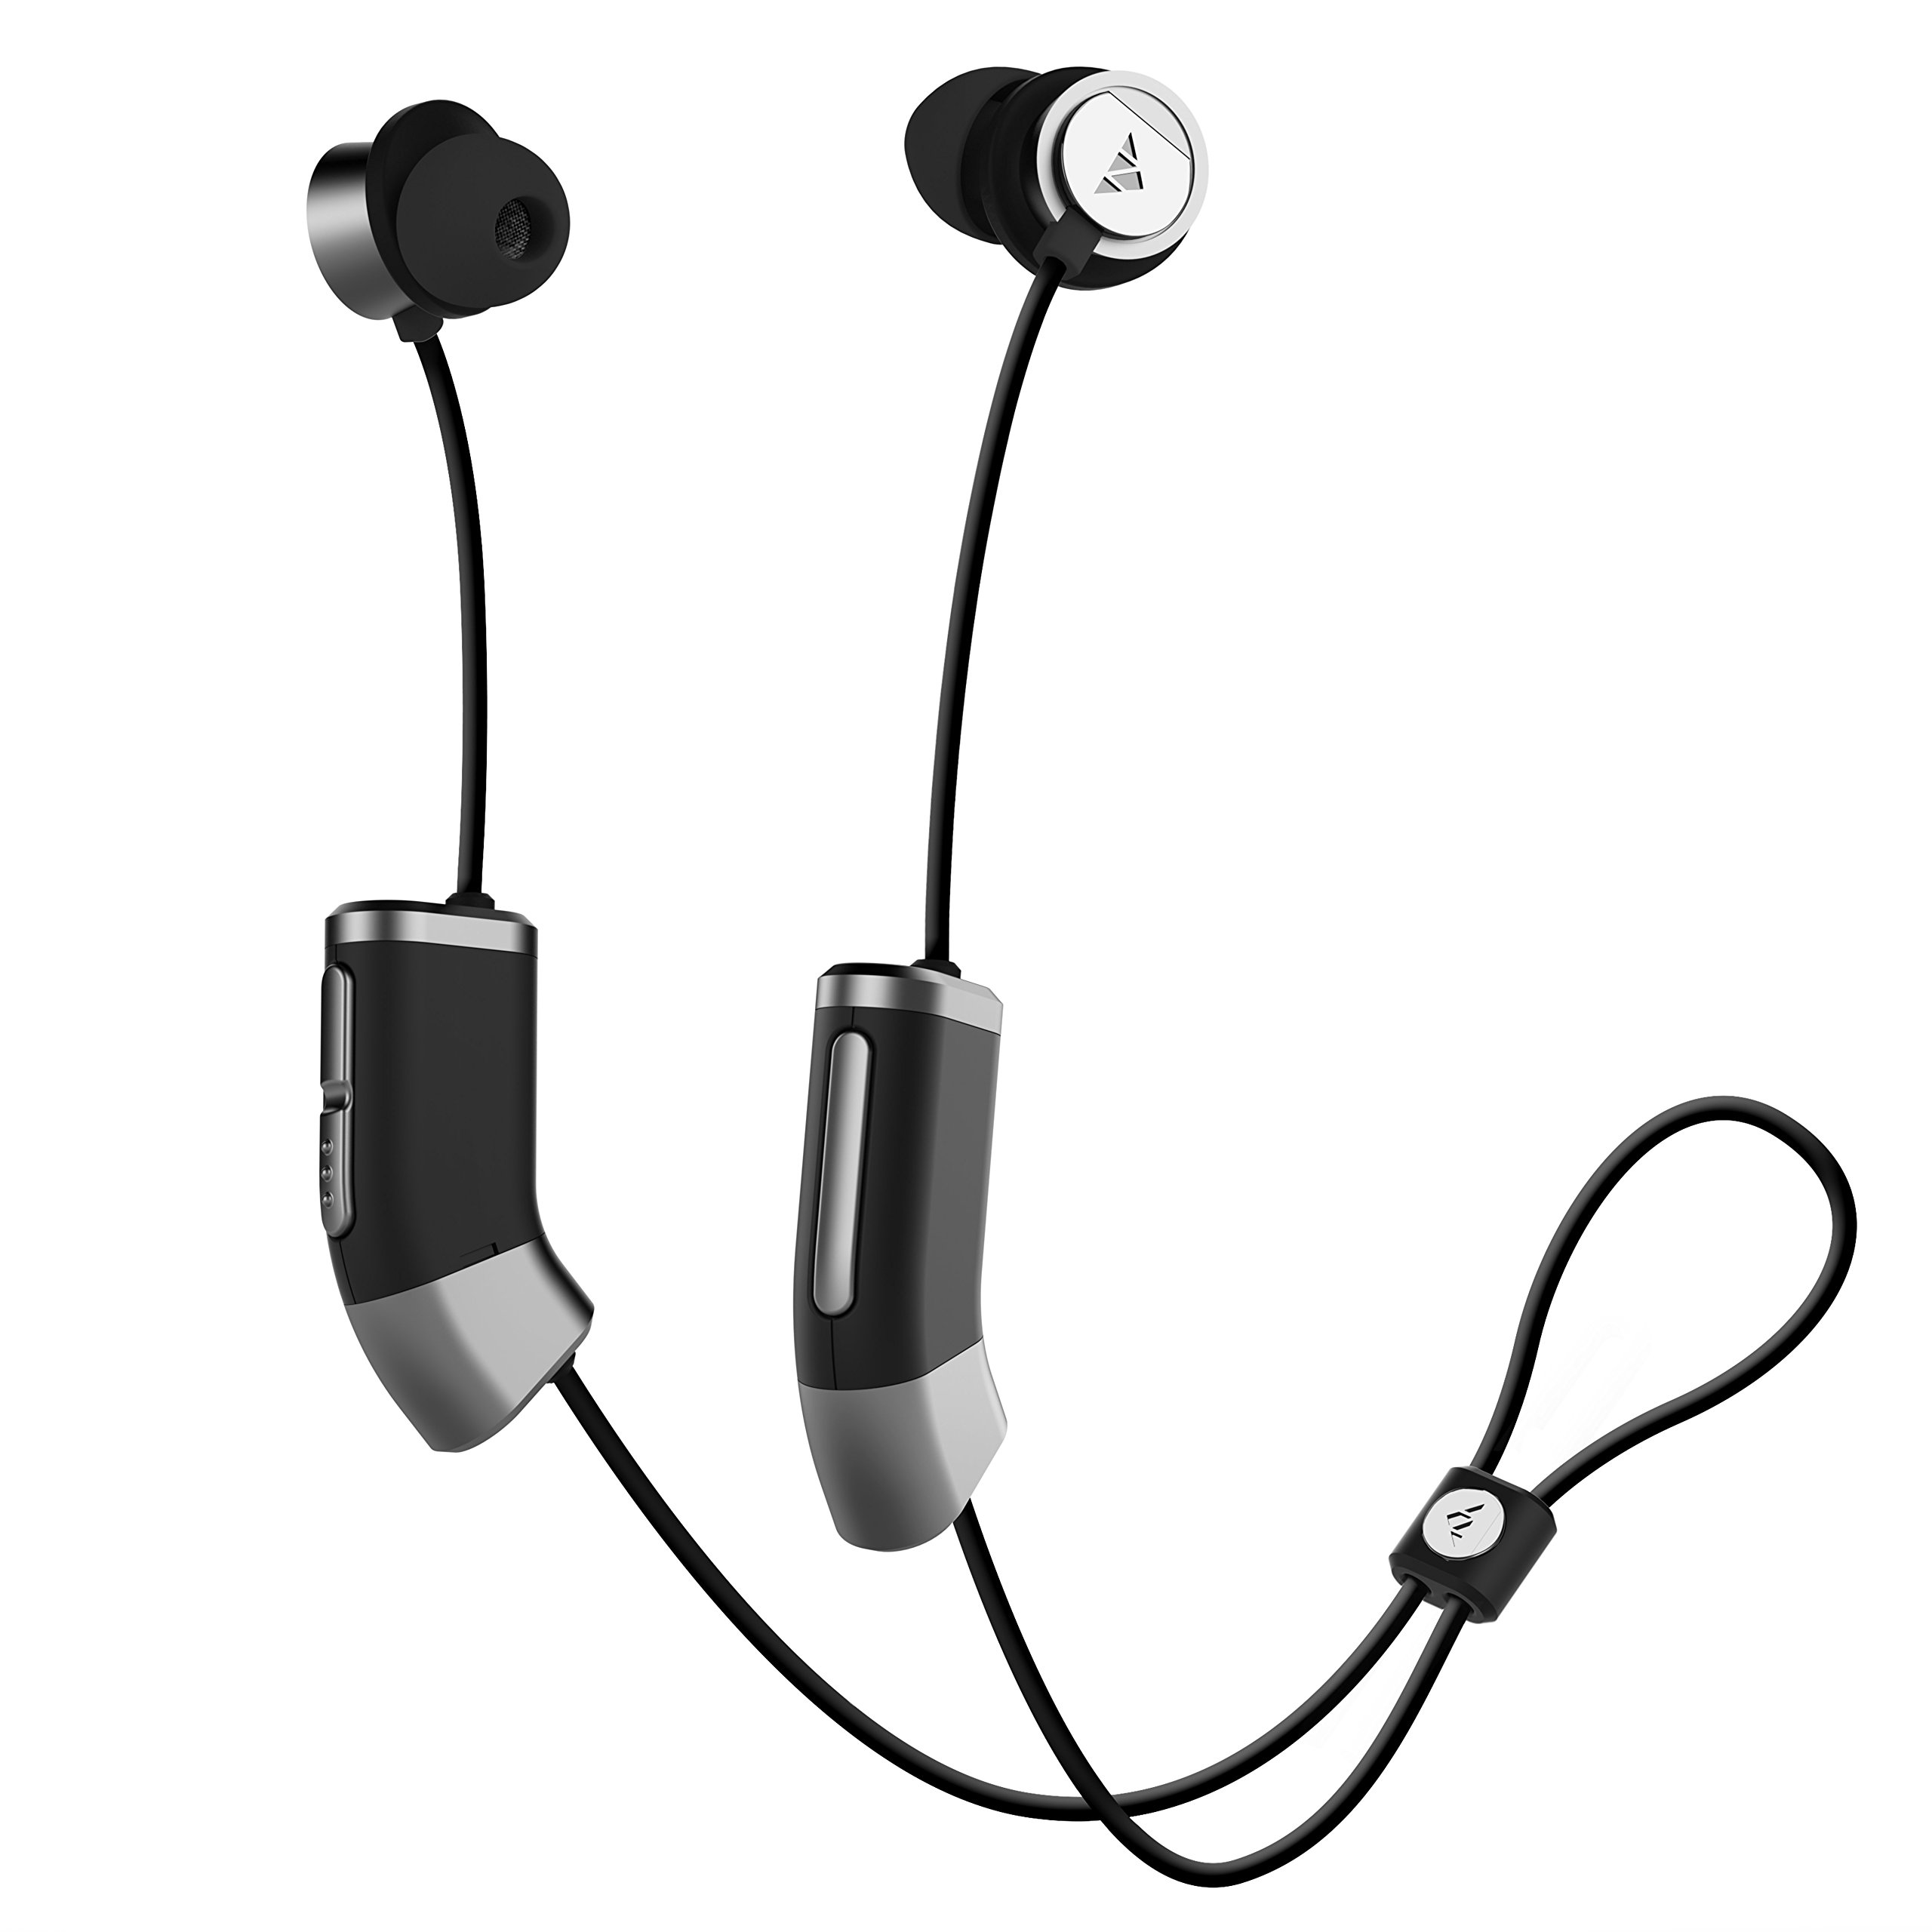 Zipbuds 26 Bluetooth Wireless Custom Fit In-Ear Headphones: HD Stereo Sound Waterproof Sweatproof 15-Hour Supercharged Battery (Black & Space Gray) by Zipbuds